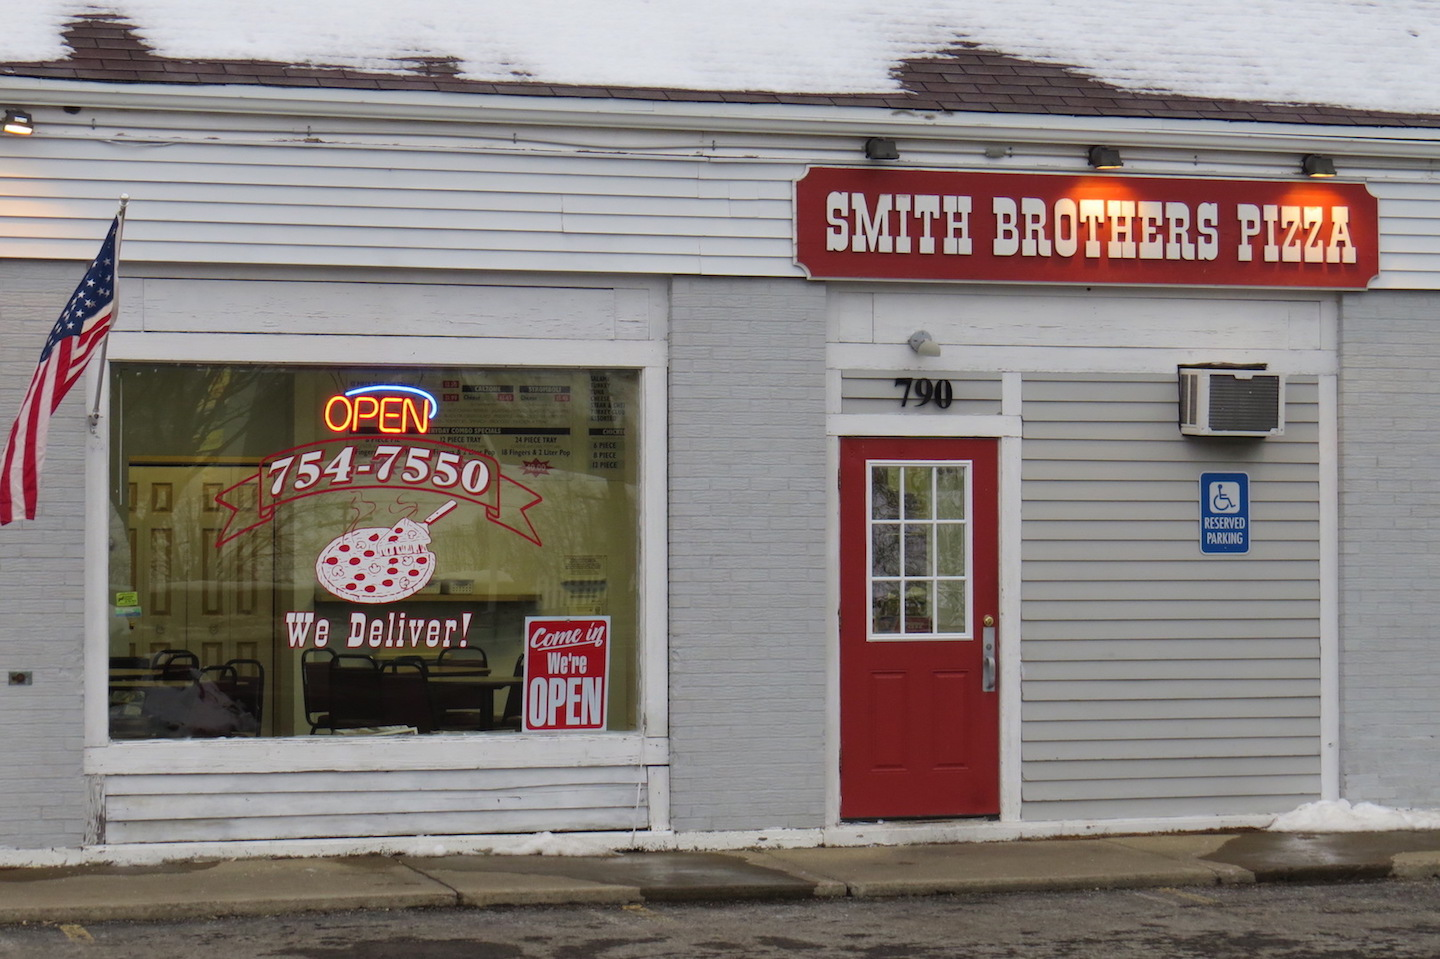 Smith Brothers Pizza